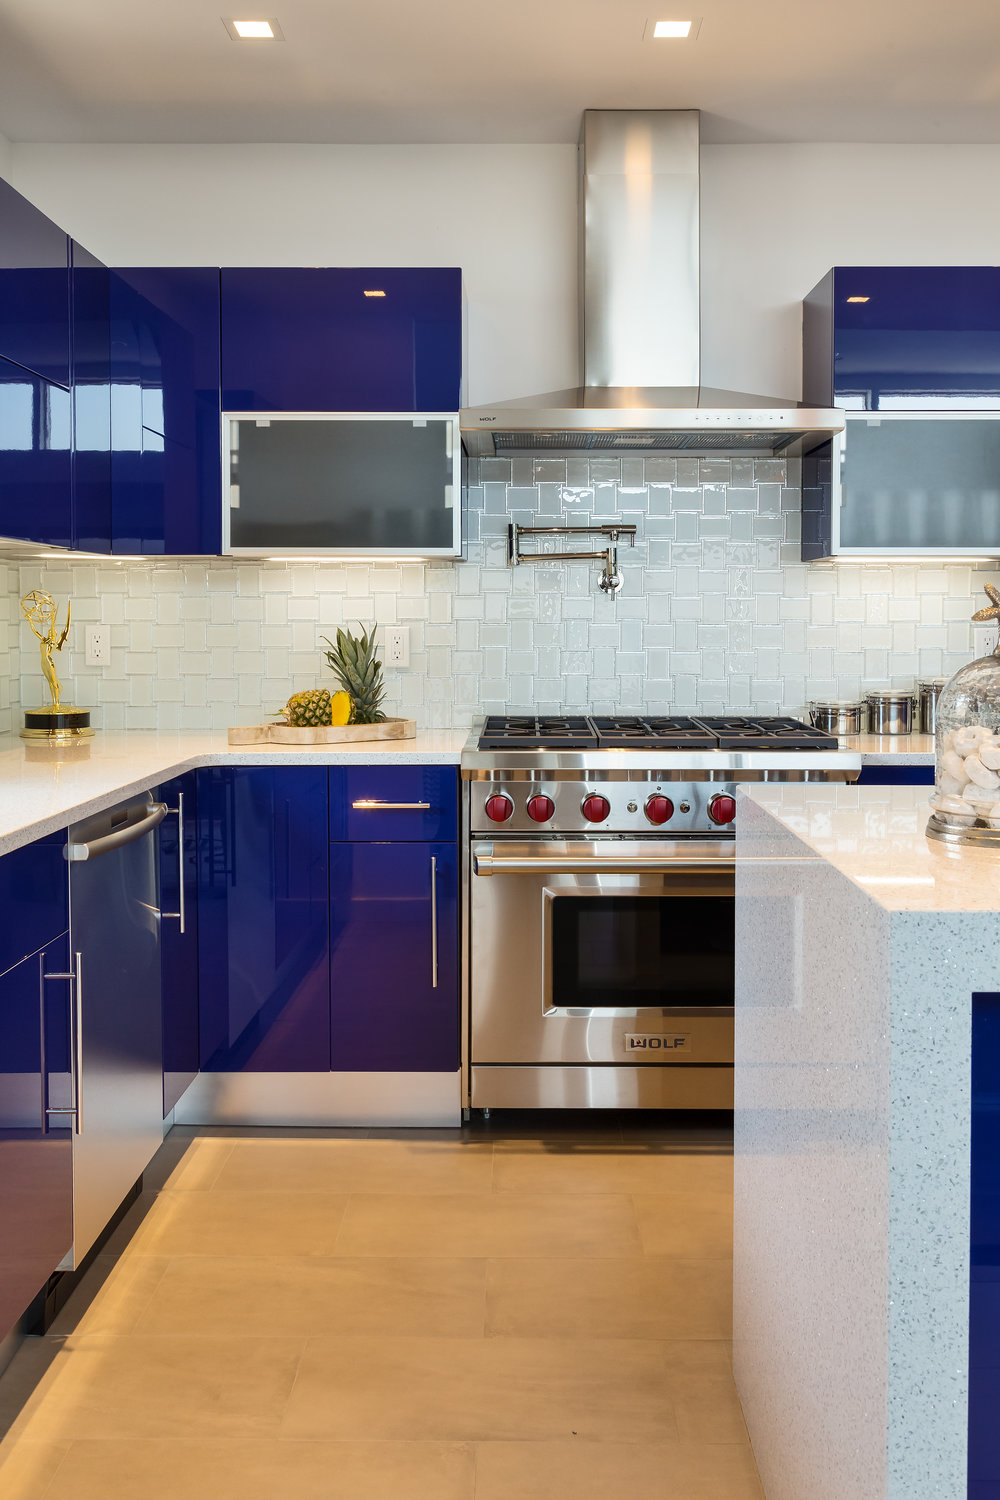 Contemporary style kitchen with stainless steel range oven